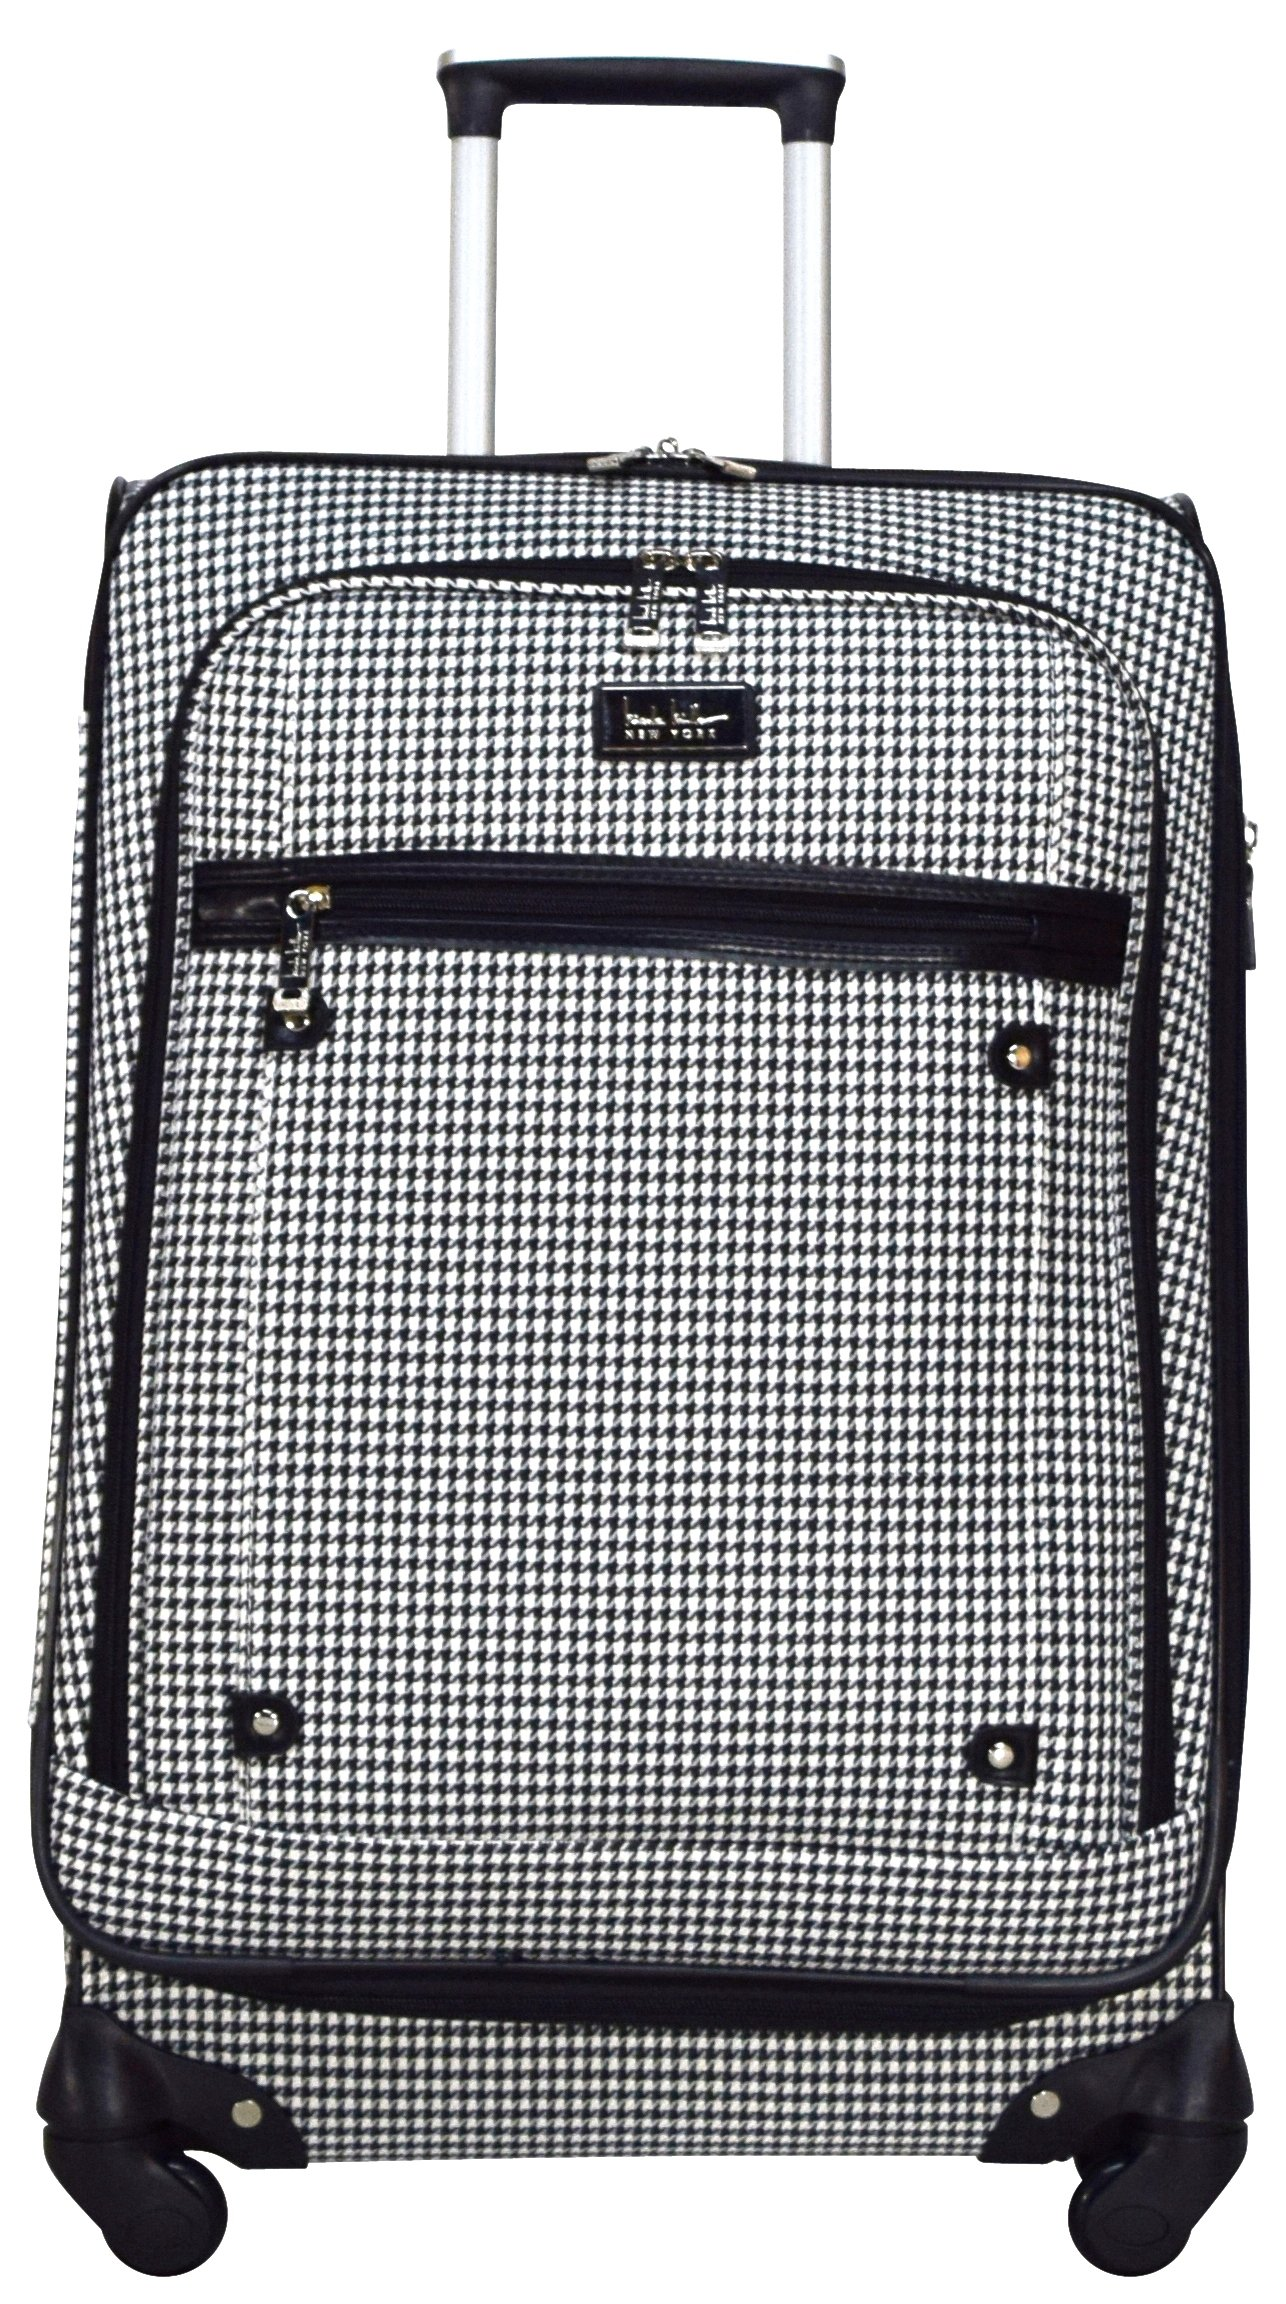 Nicole Miller New York Taylor 24'' Expandable Spinner Suitcase (Black/White Plaid) by Nicole Miller New York (Image #2)